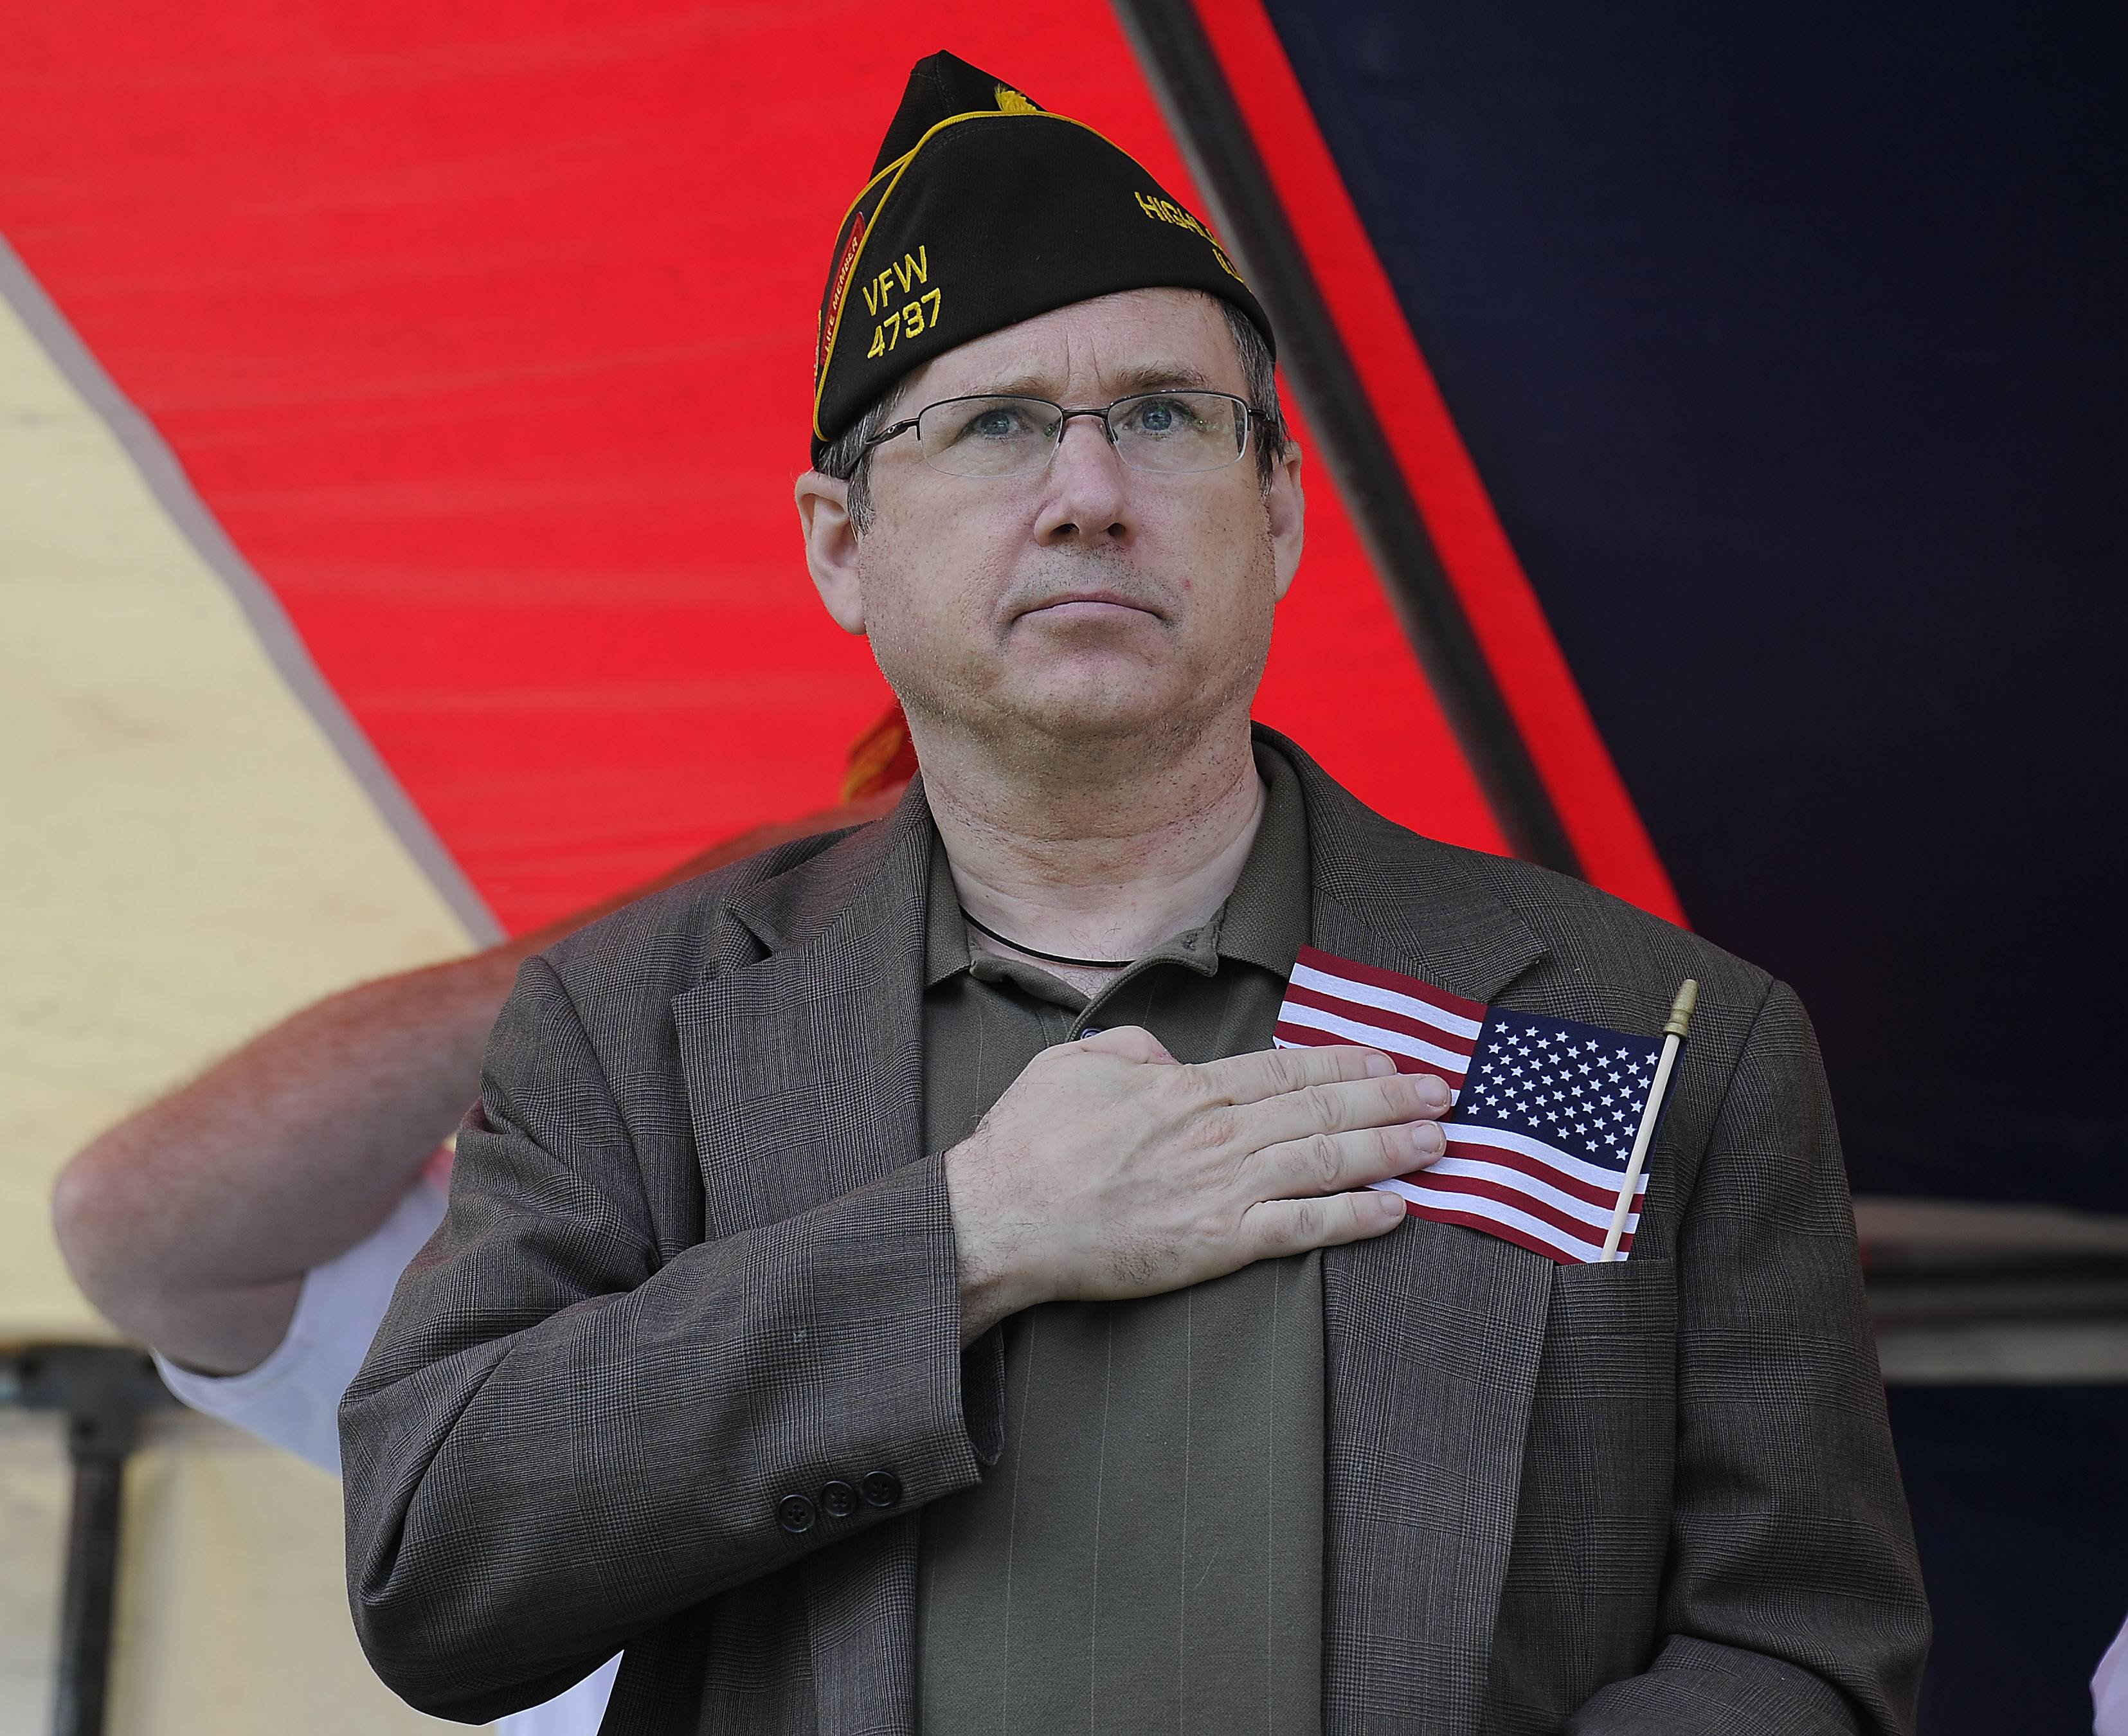 Senator Mark Kirk before the start of the ceremony at the Arlington Heights Memorial Day event on Monday.